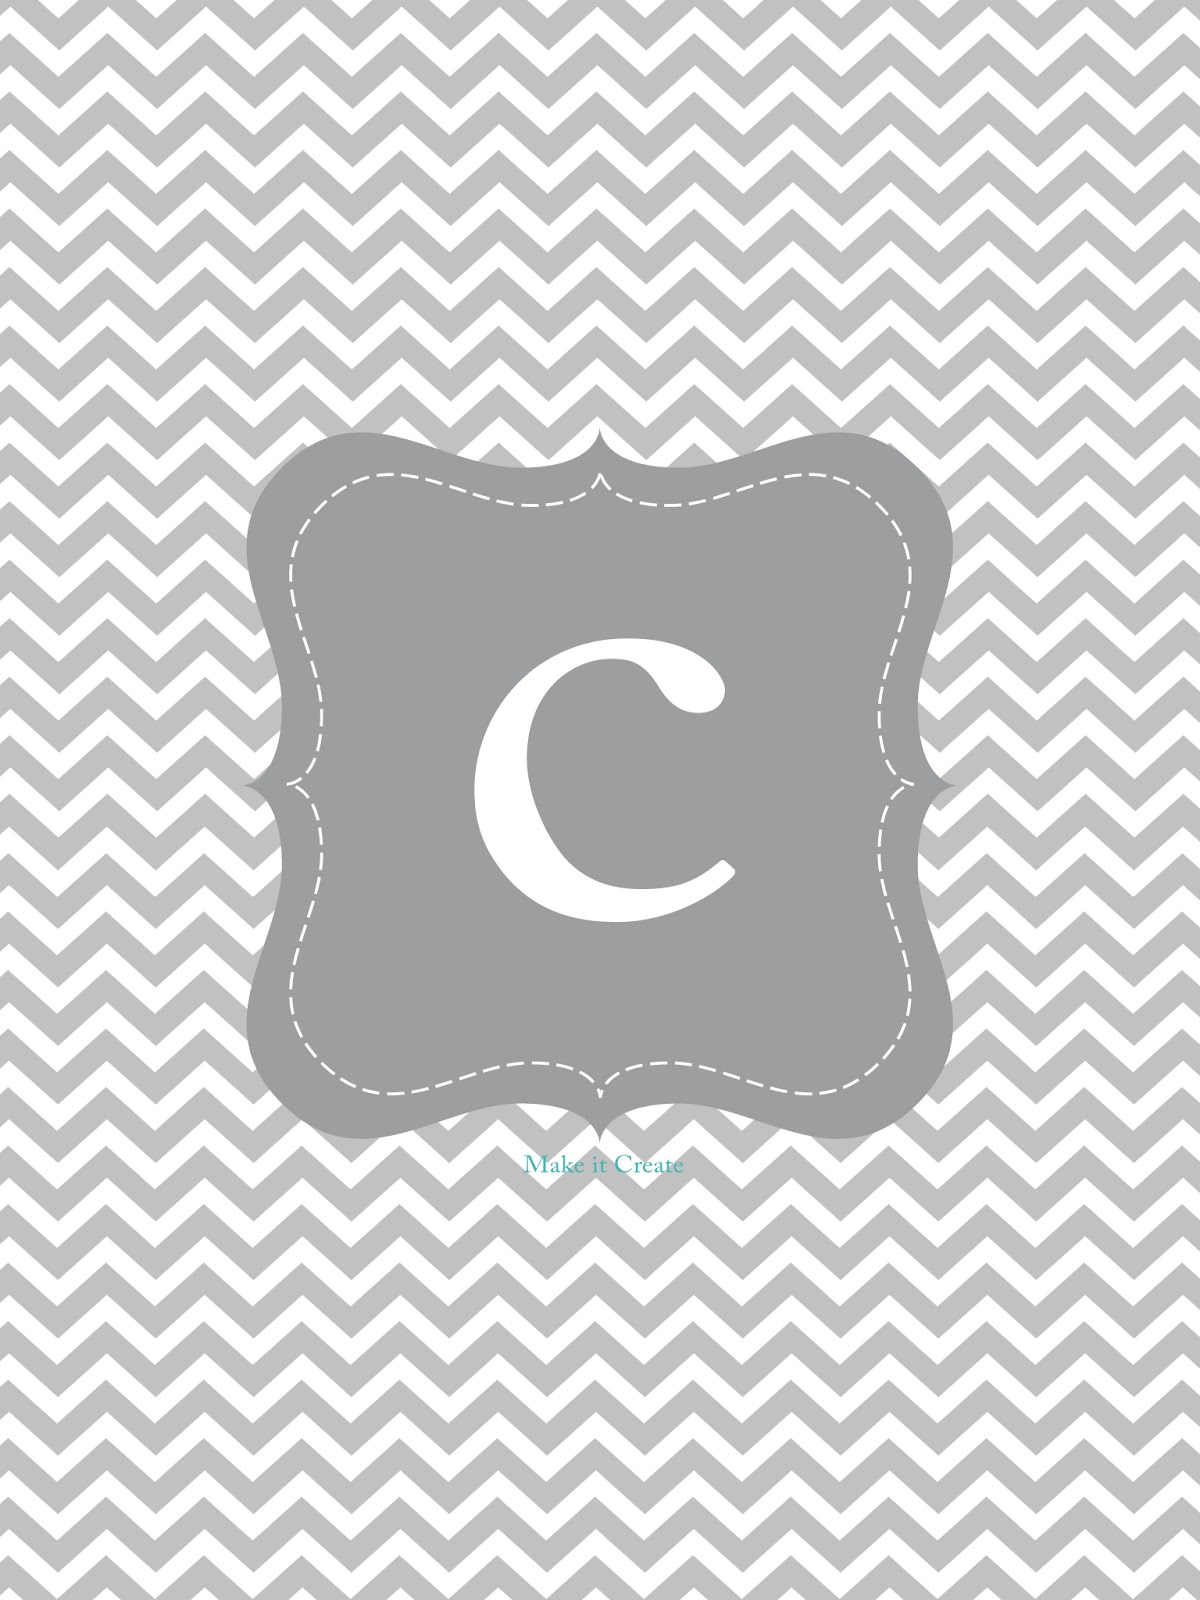 Chevron Background With Initials C Download